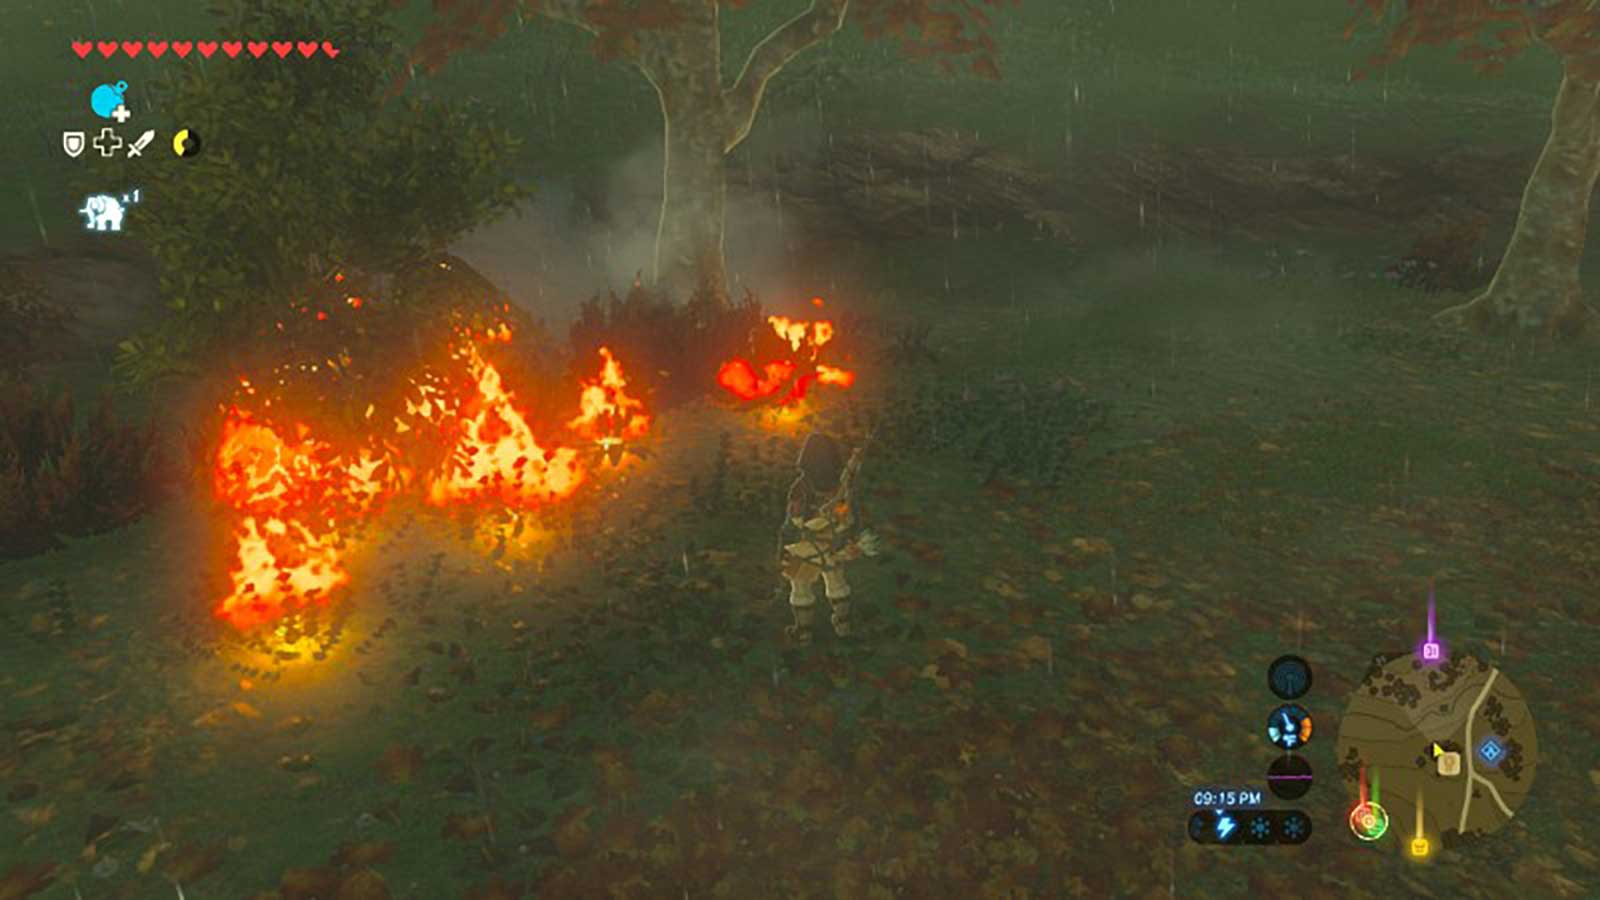 Link standing in front of burning grass and trees